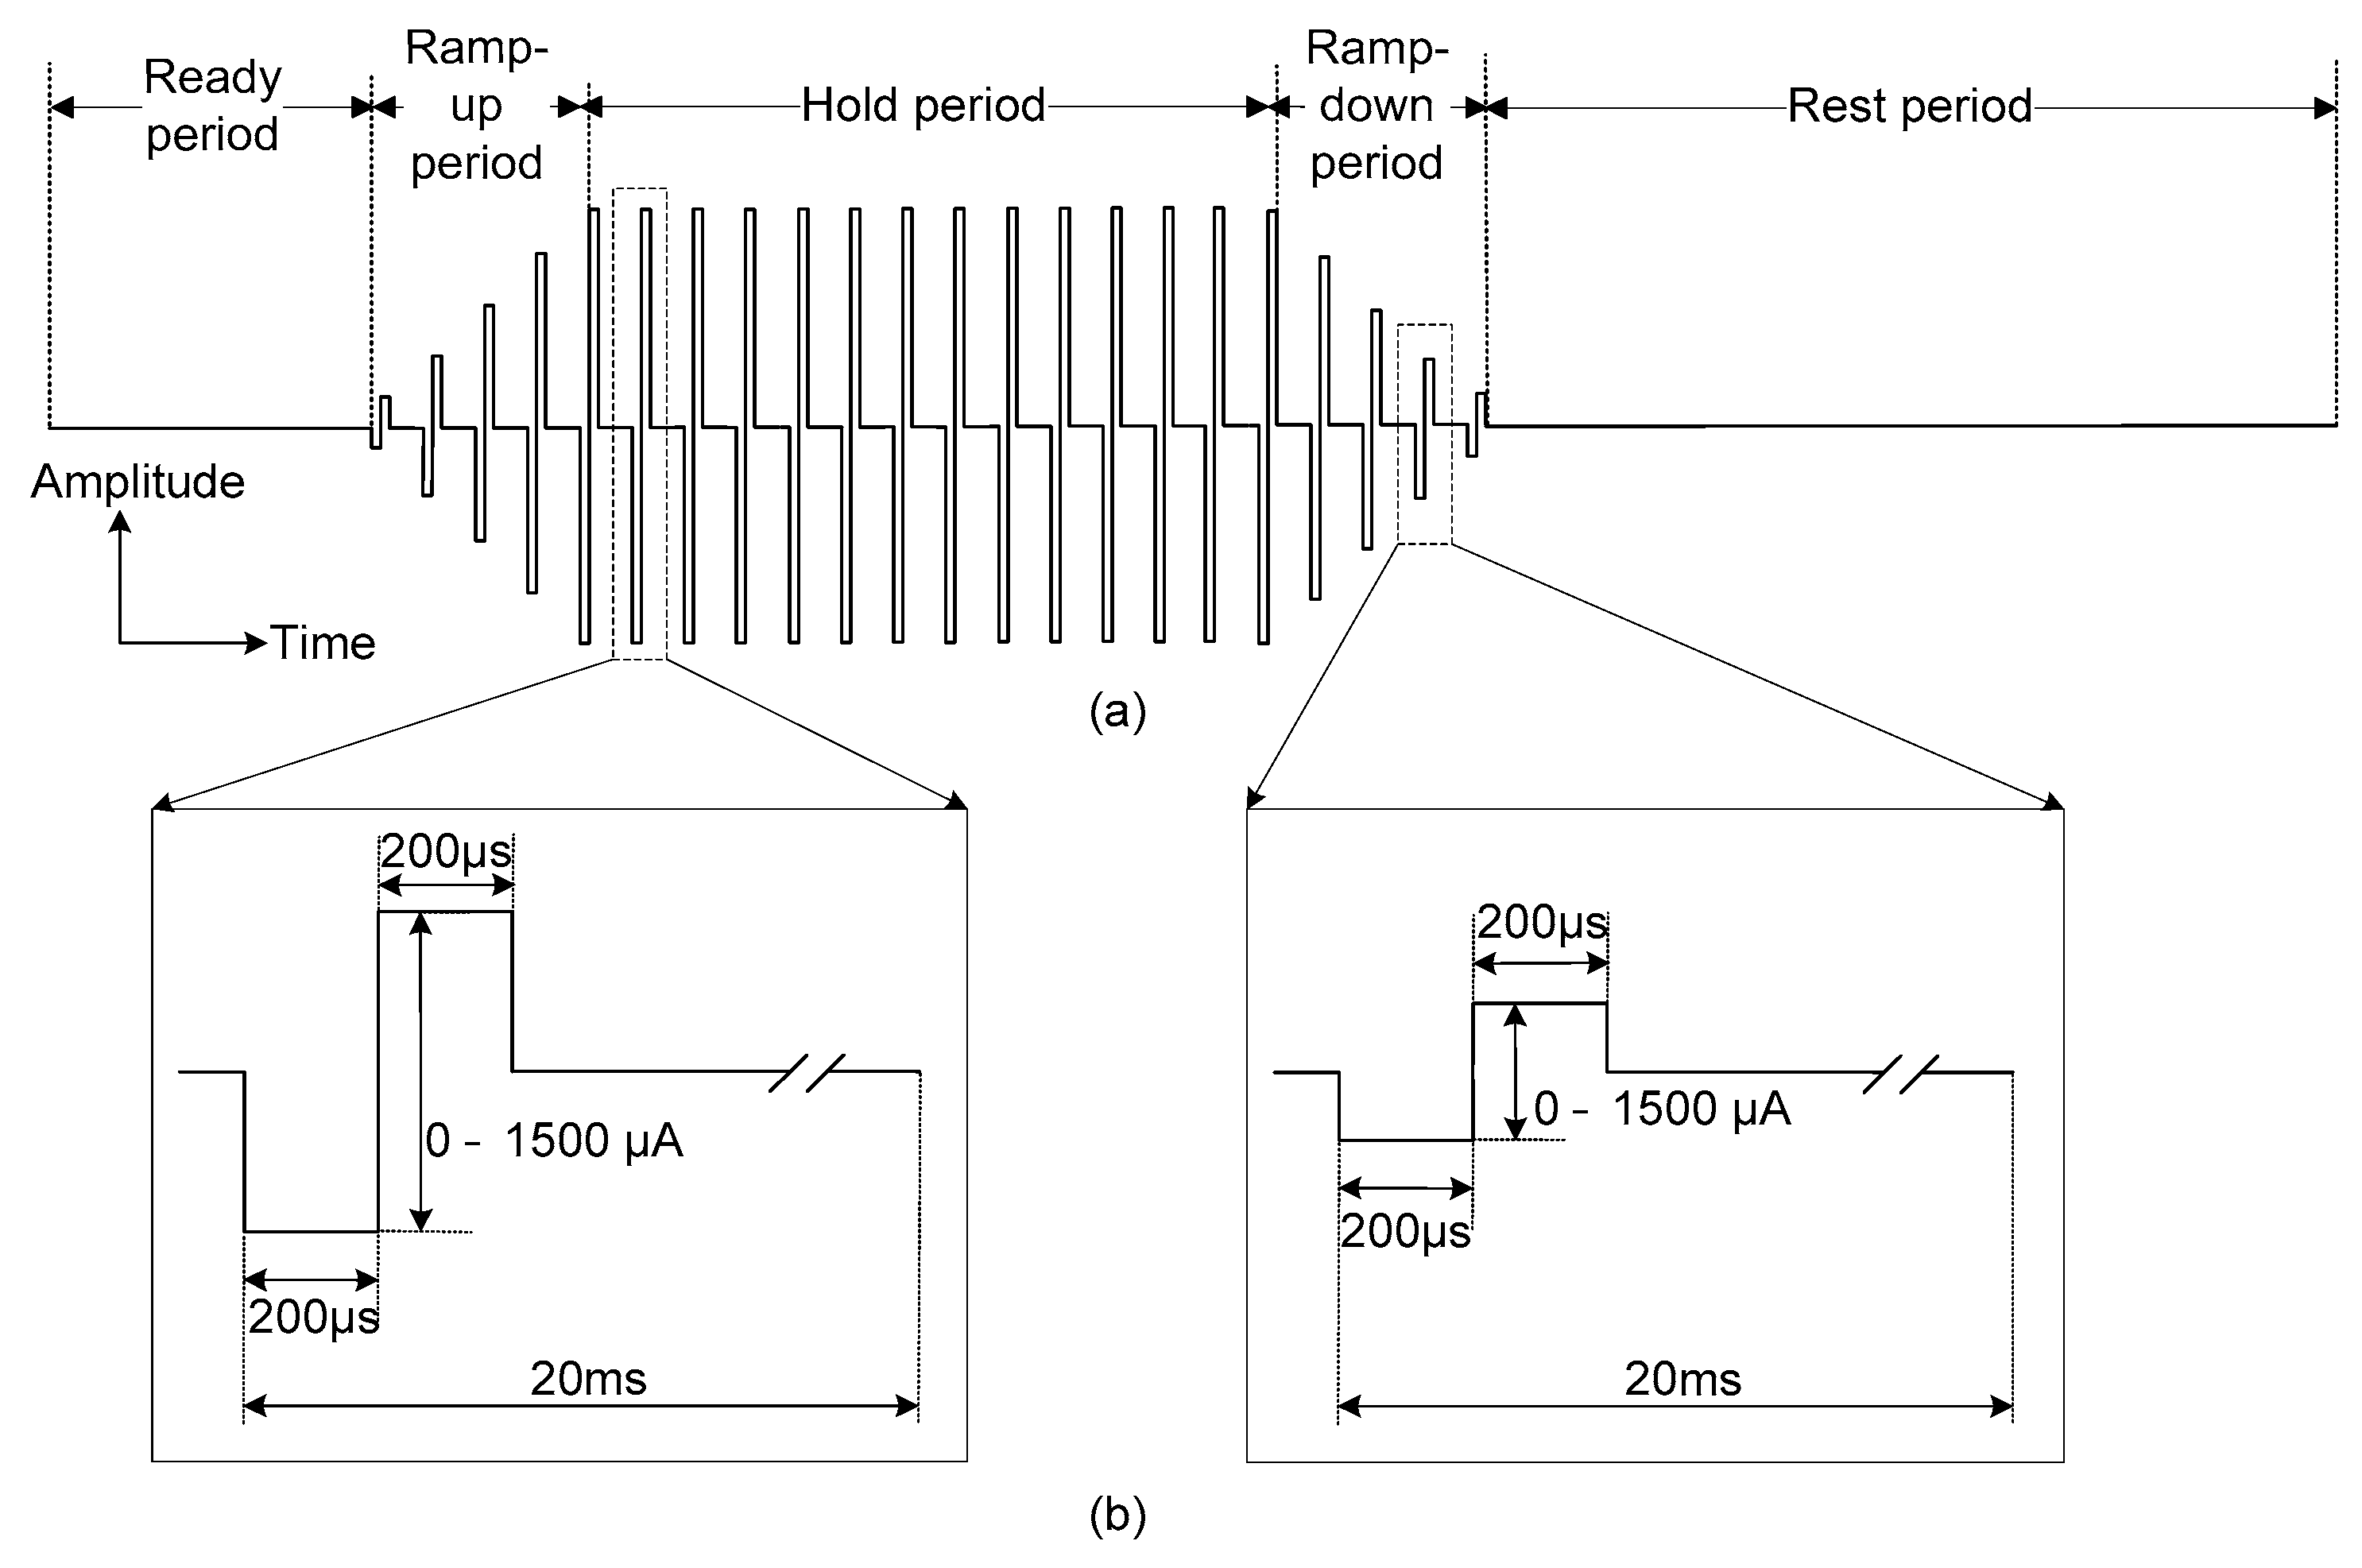 a high voltage neural stimulator combined with Programmable neural prosthesis based on surface electrical negative high voltage (+vhigh, -vhigh) high (a dj) user interface stimulation electrodes amplitude.